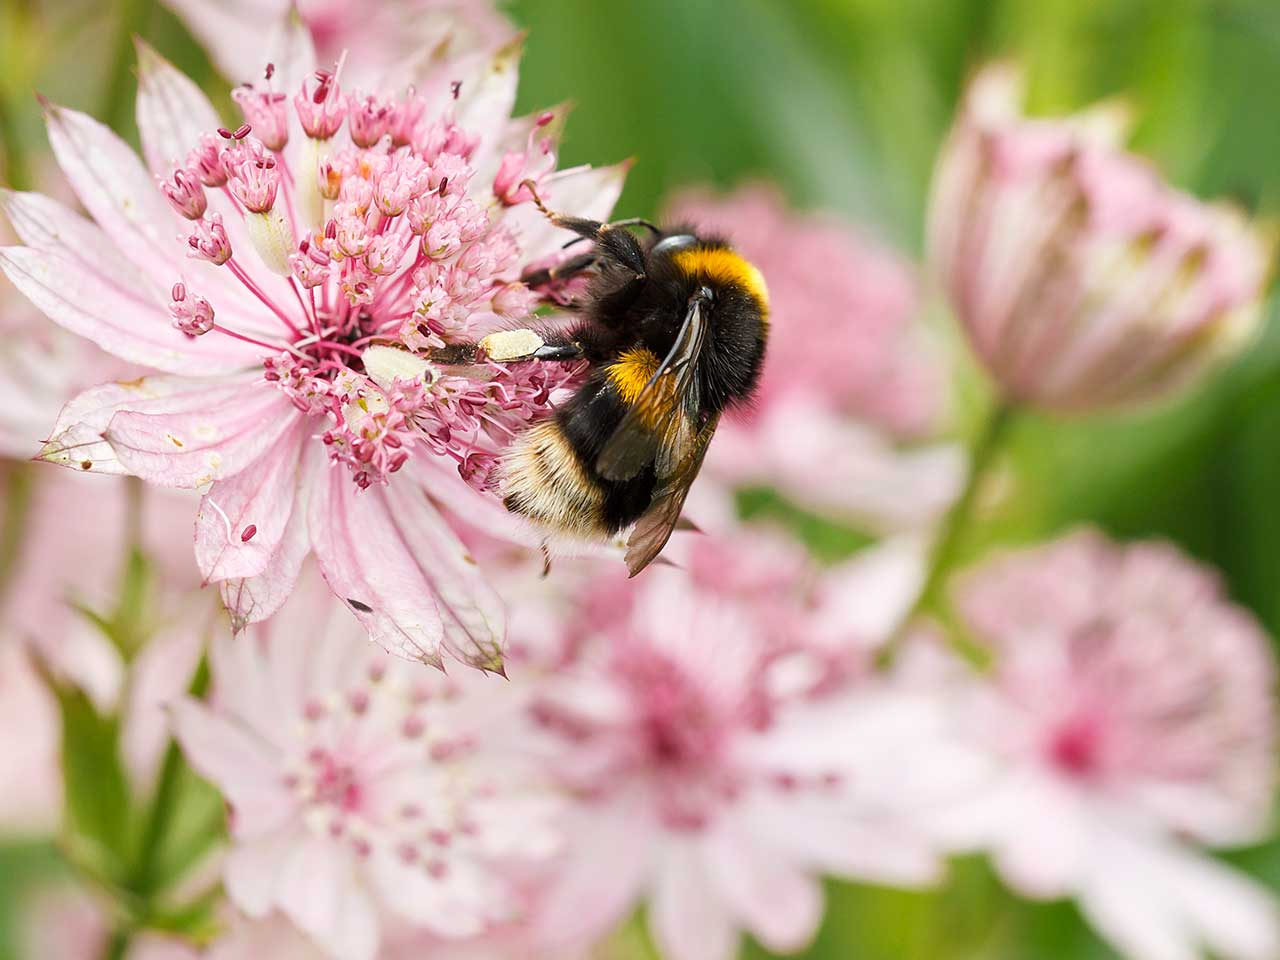 Buff-tailed male bumblebee on Astrantia